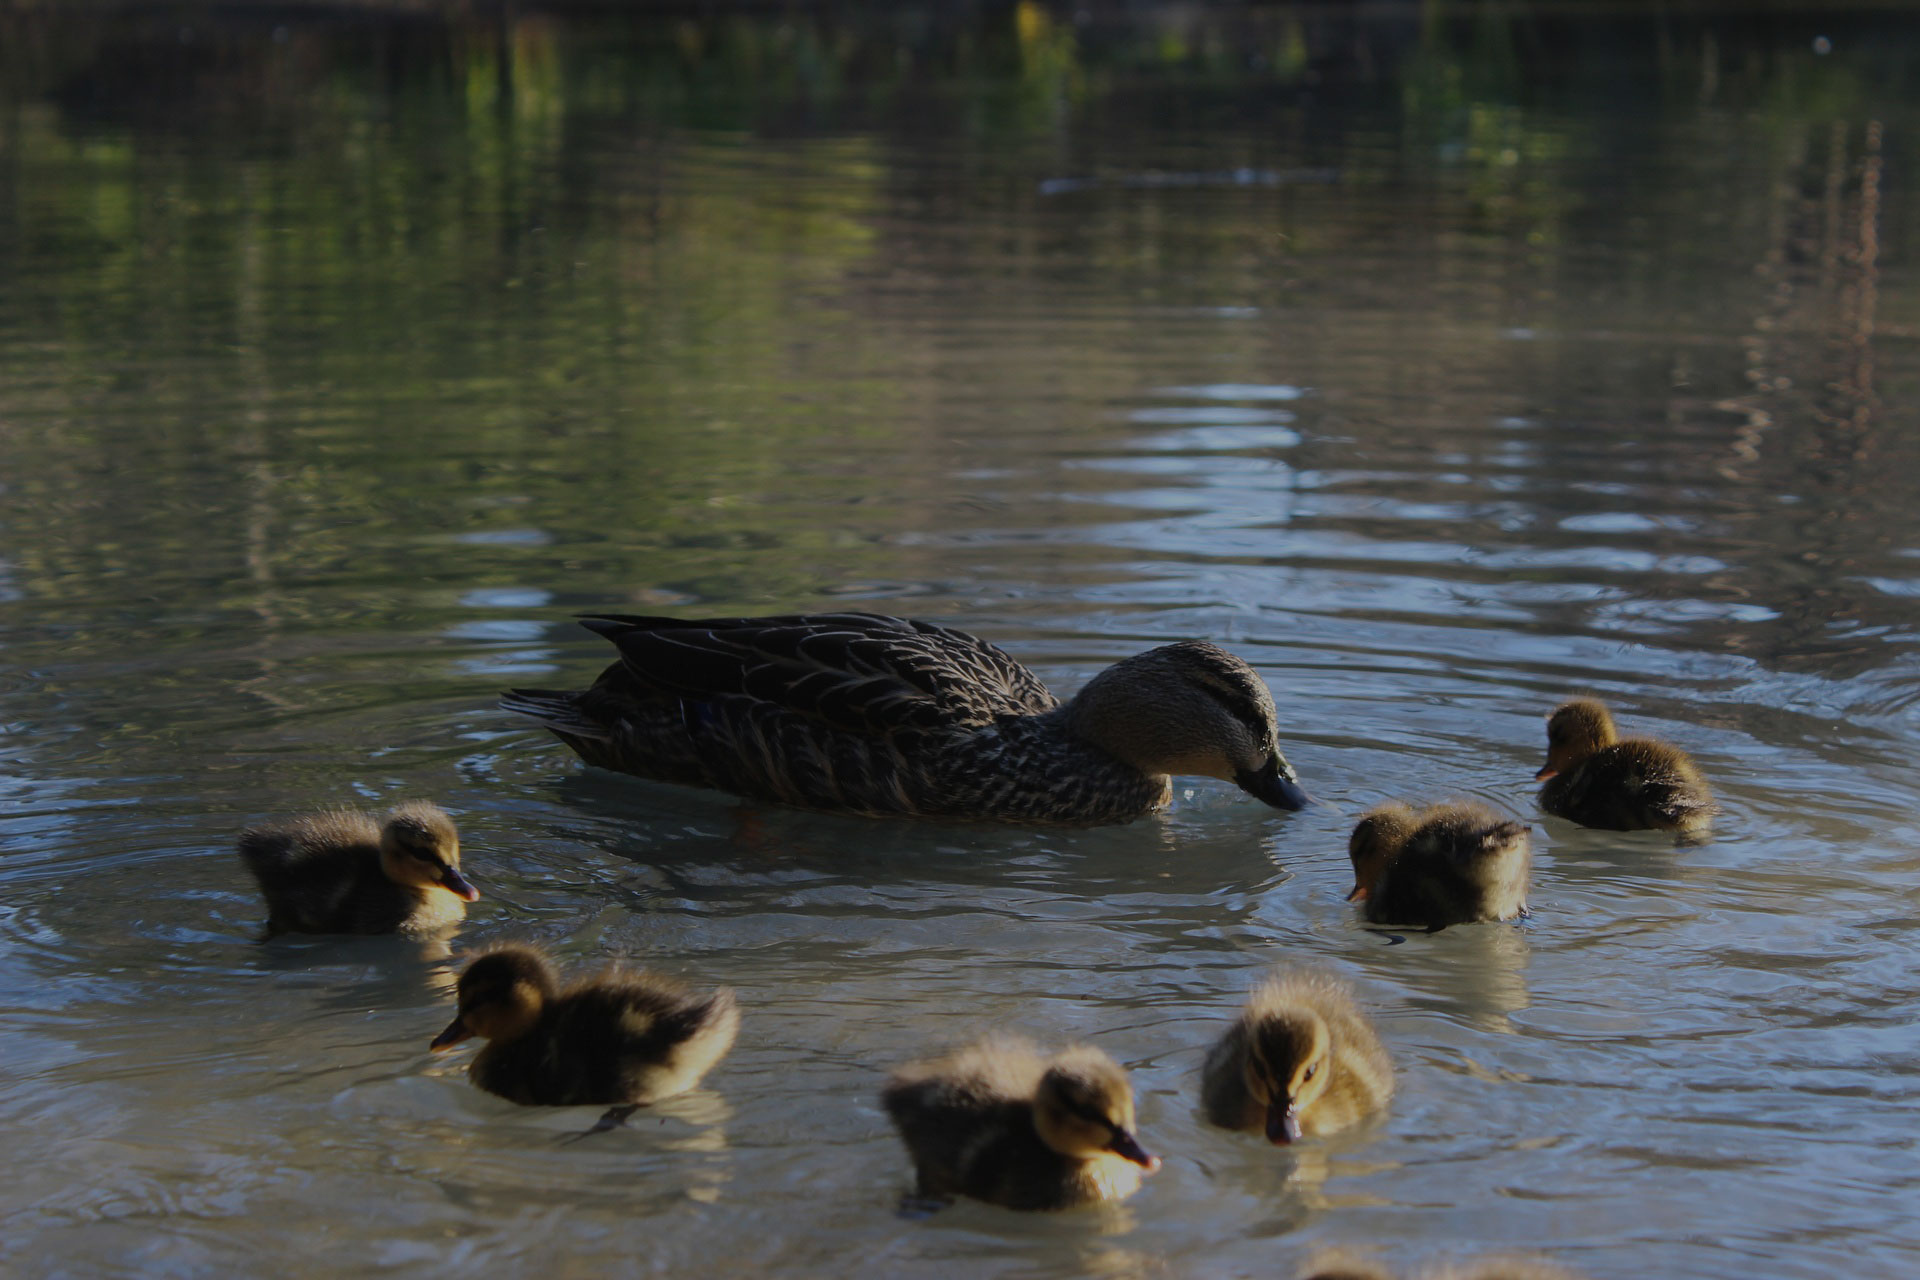 Duck and ducklings are in the pond